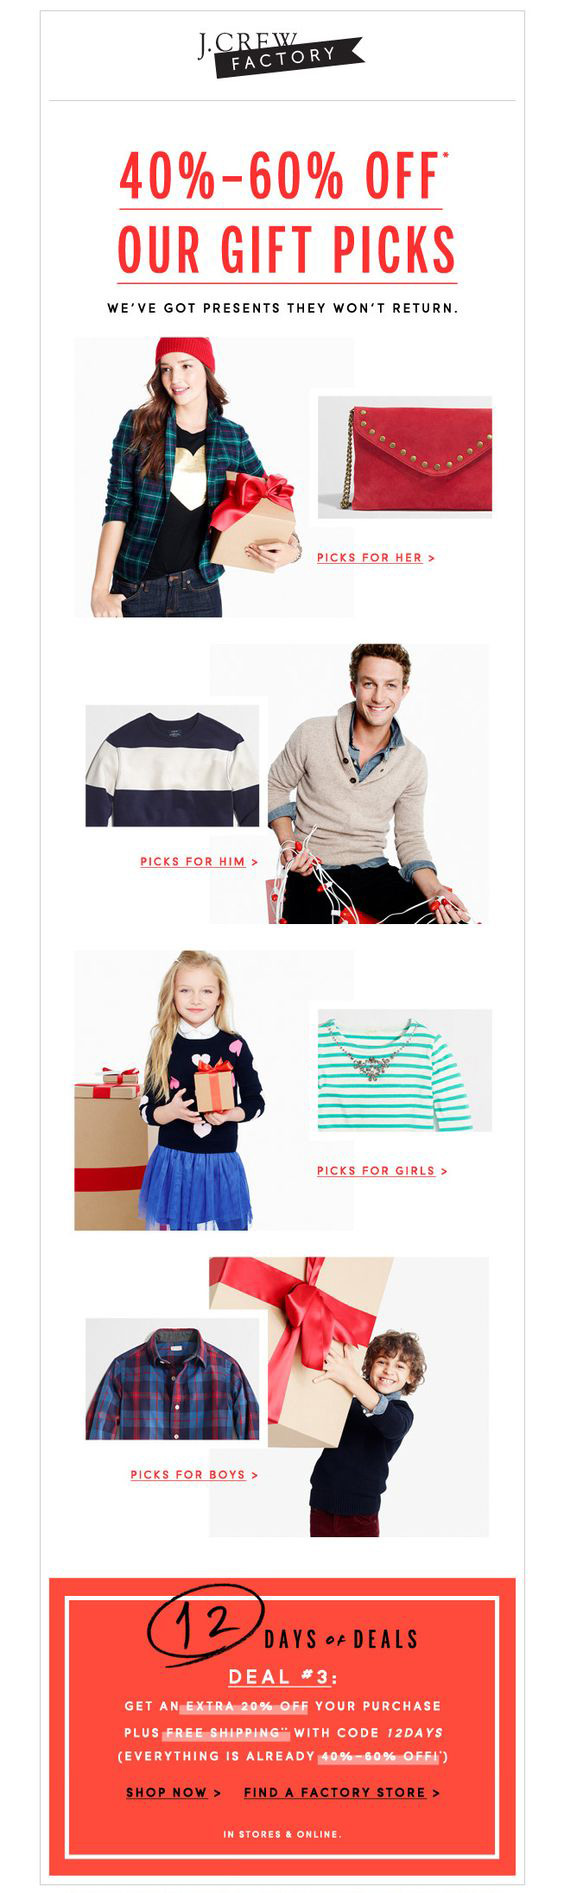 Holiday email marketing_J-Crew-Factory